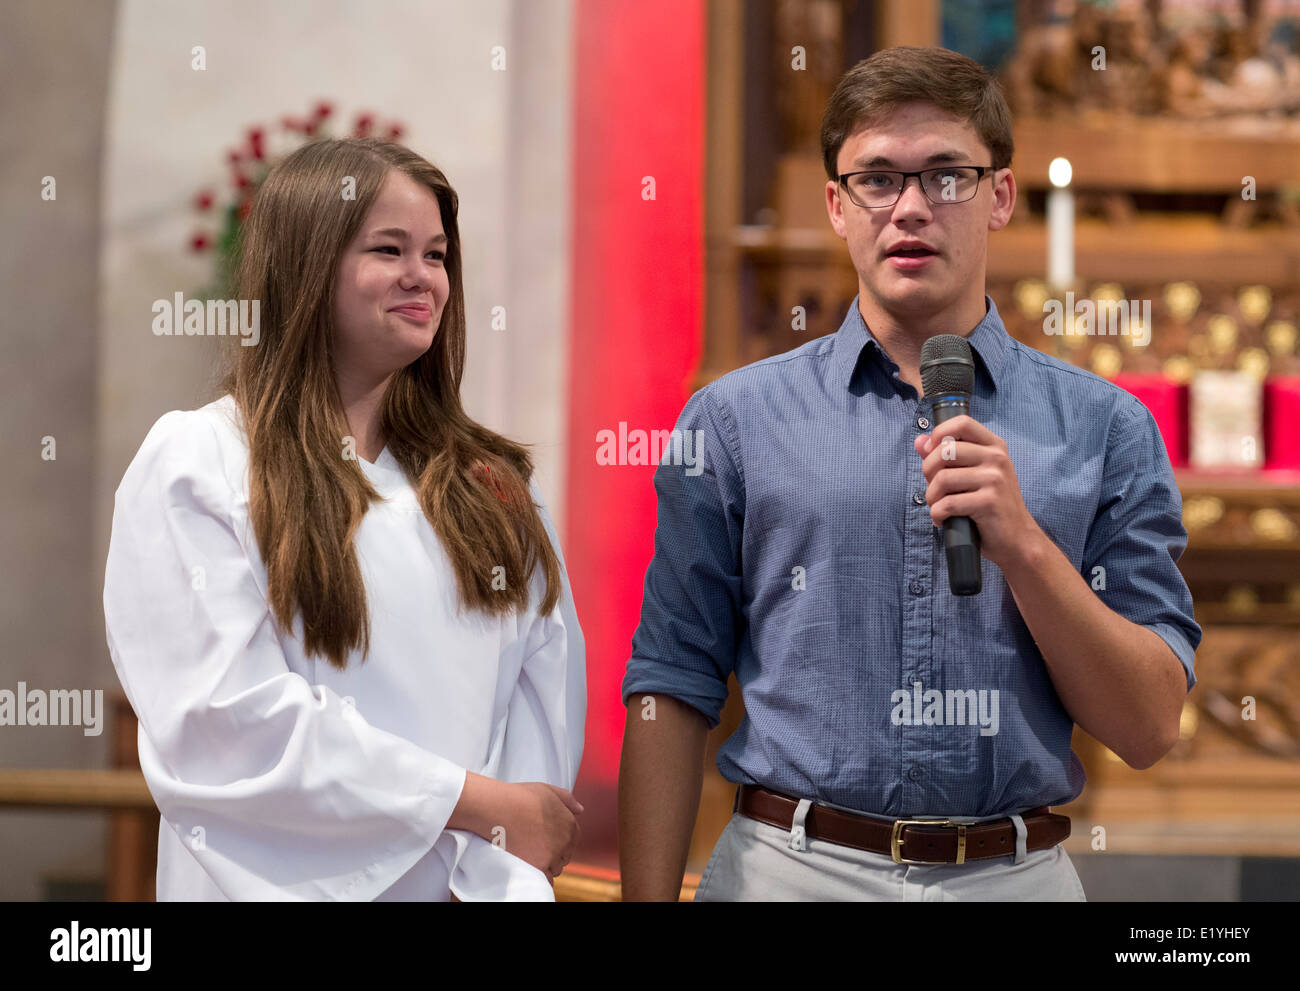 Lutheran teenager participating in the Rite of Confirmation is introduced to the congregation by her sponsor. - Stock Image